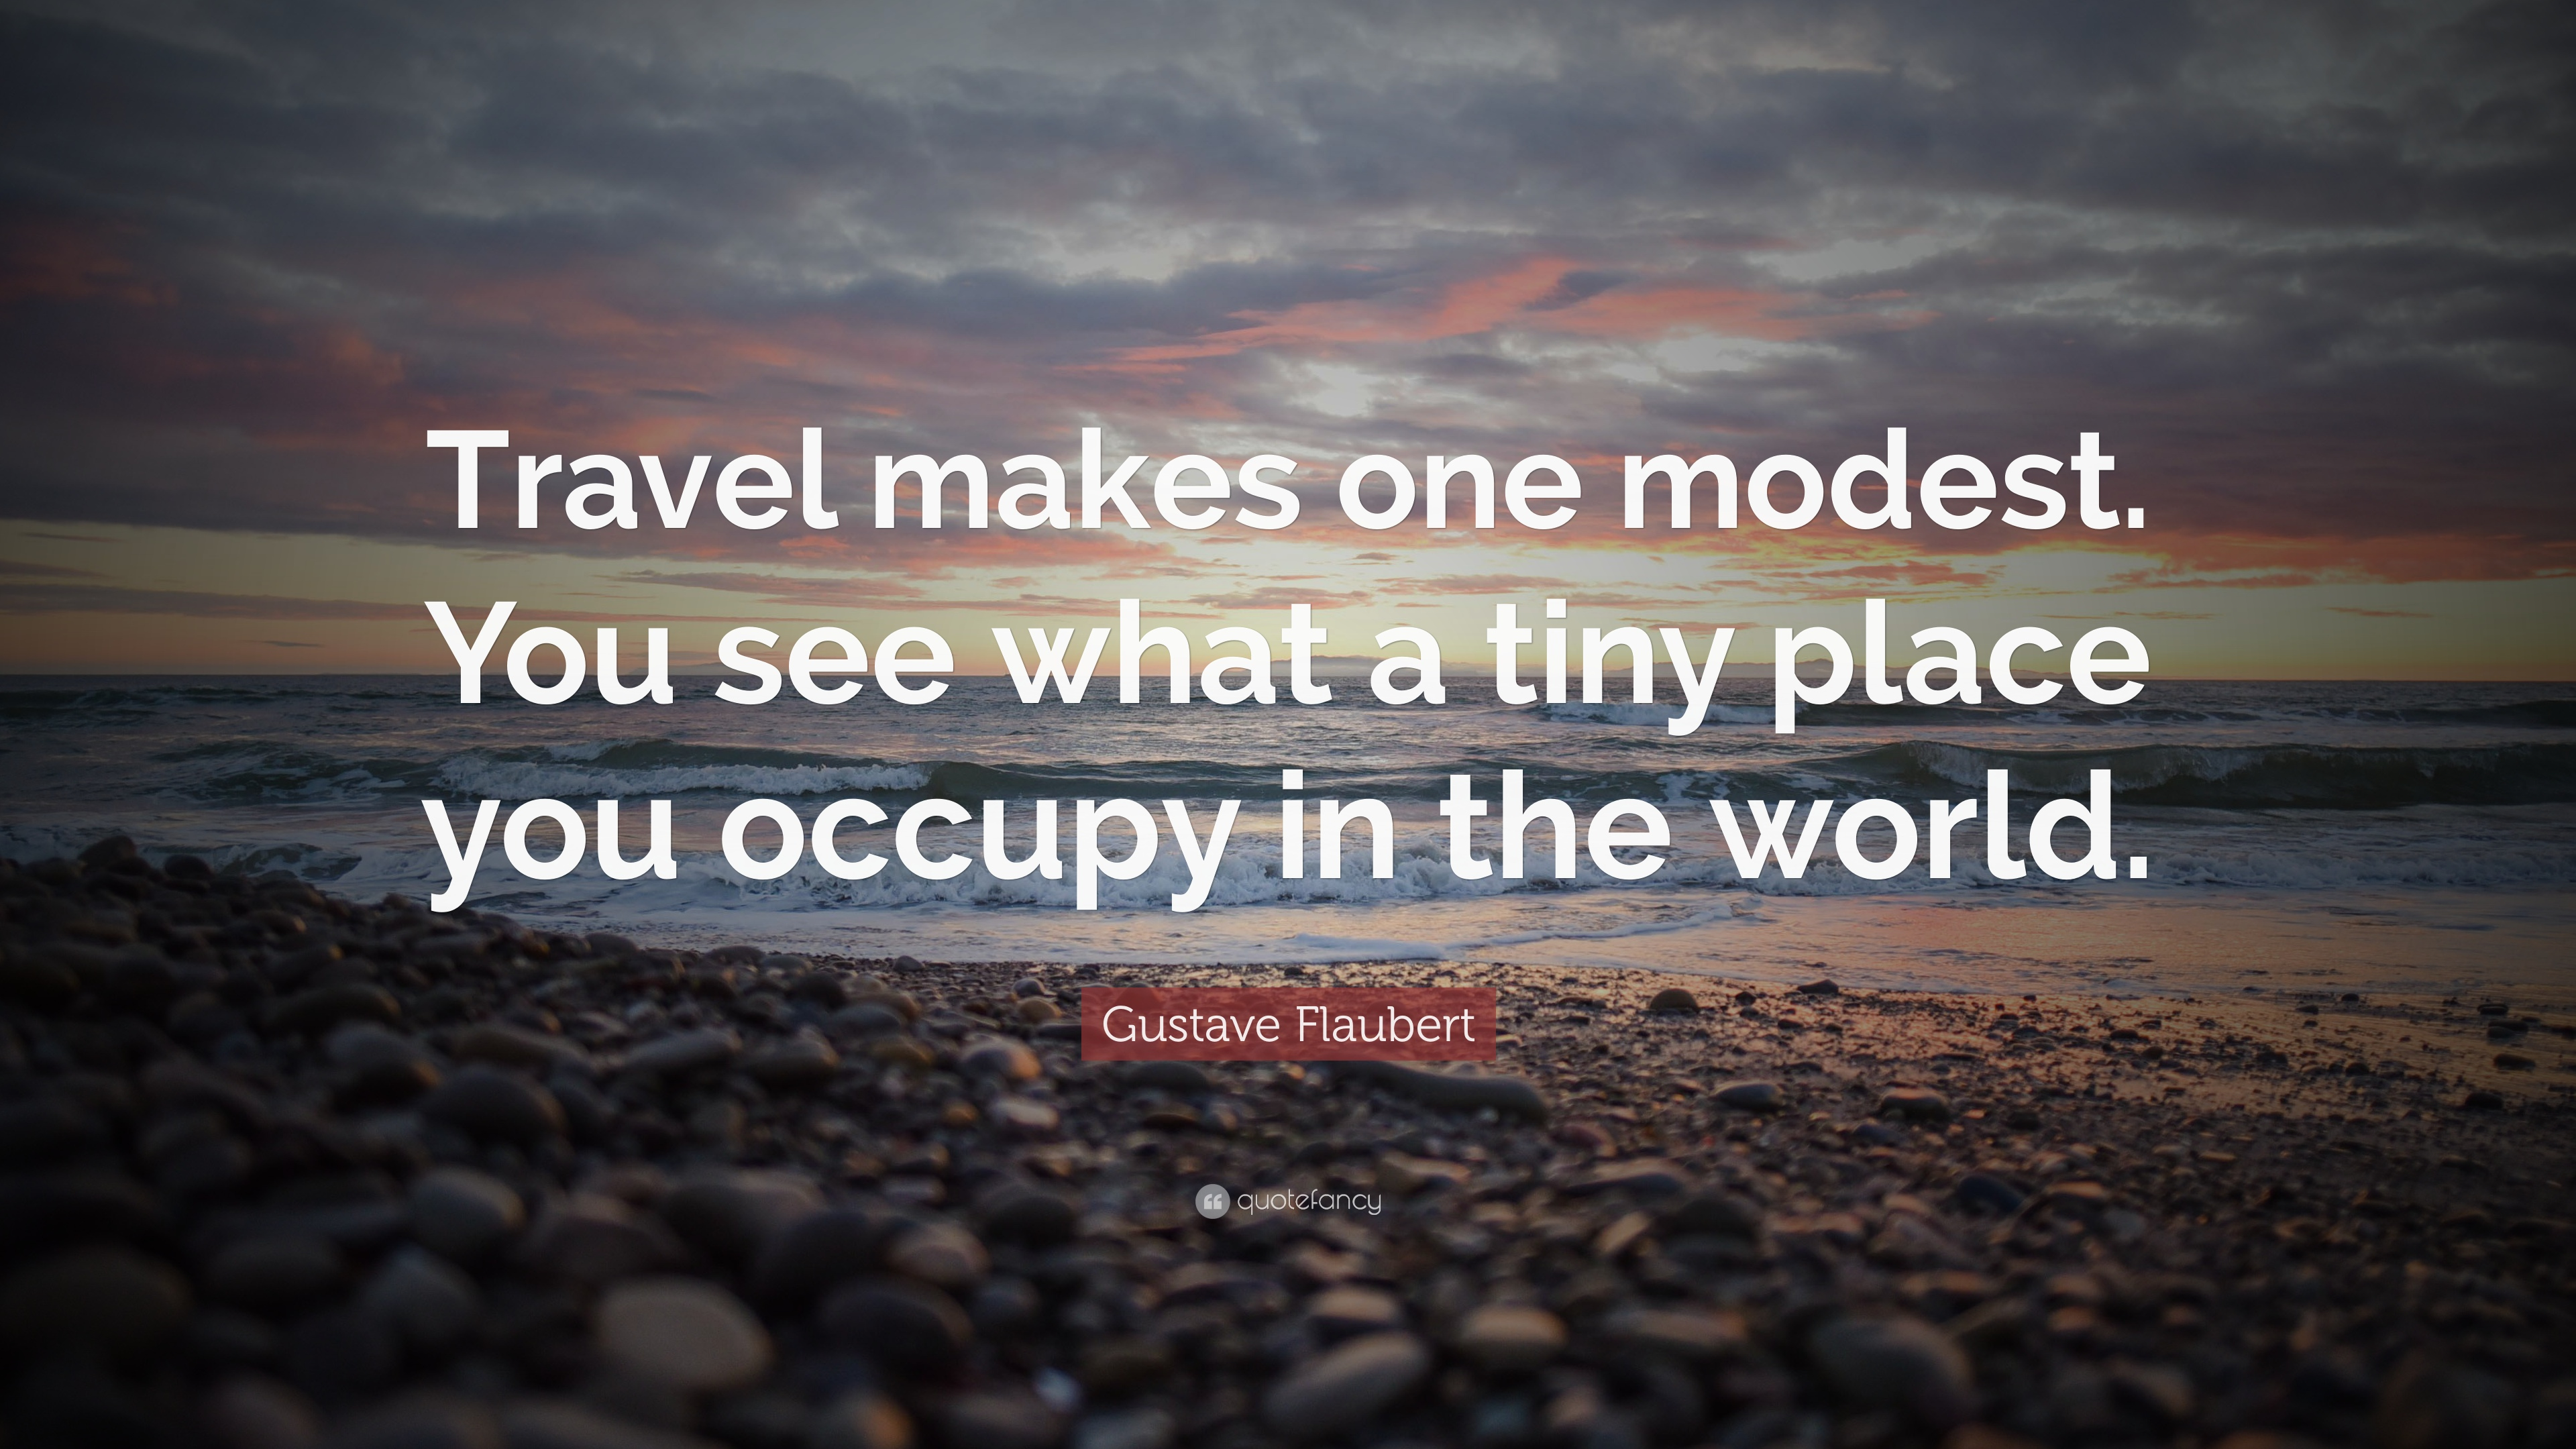 Gustave Flaubert Quote Travel Makes One Modest You See